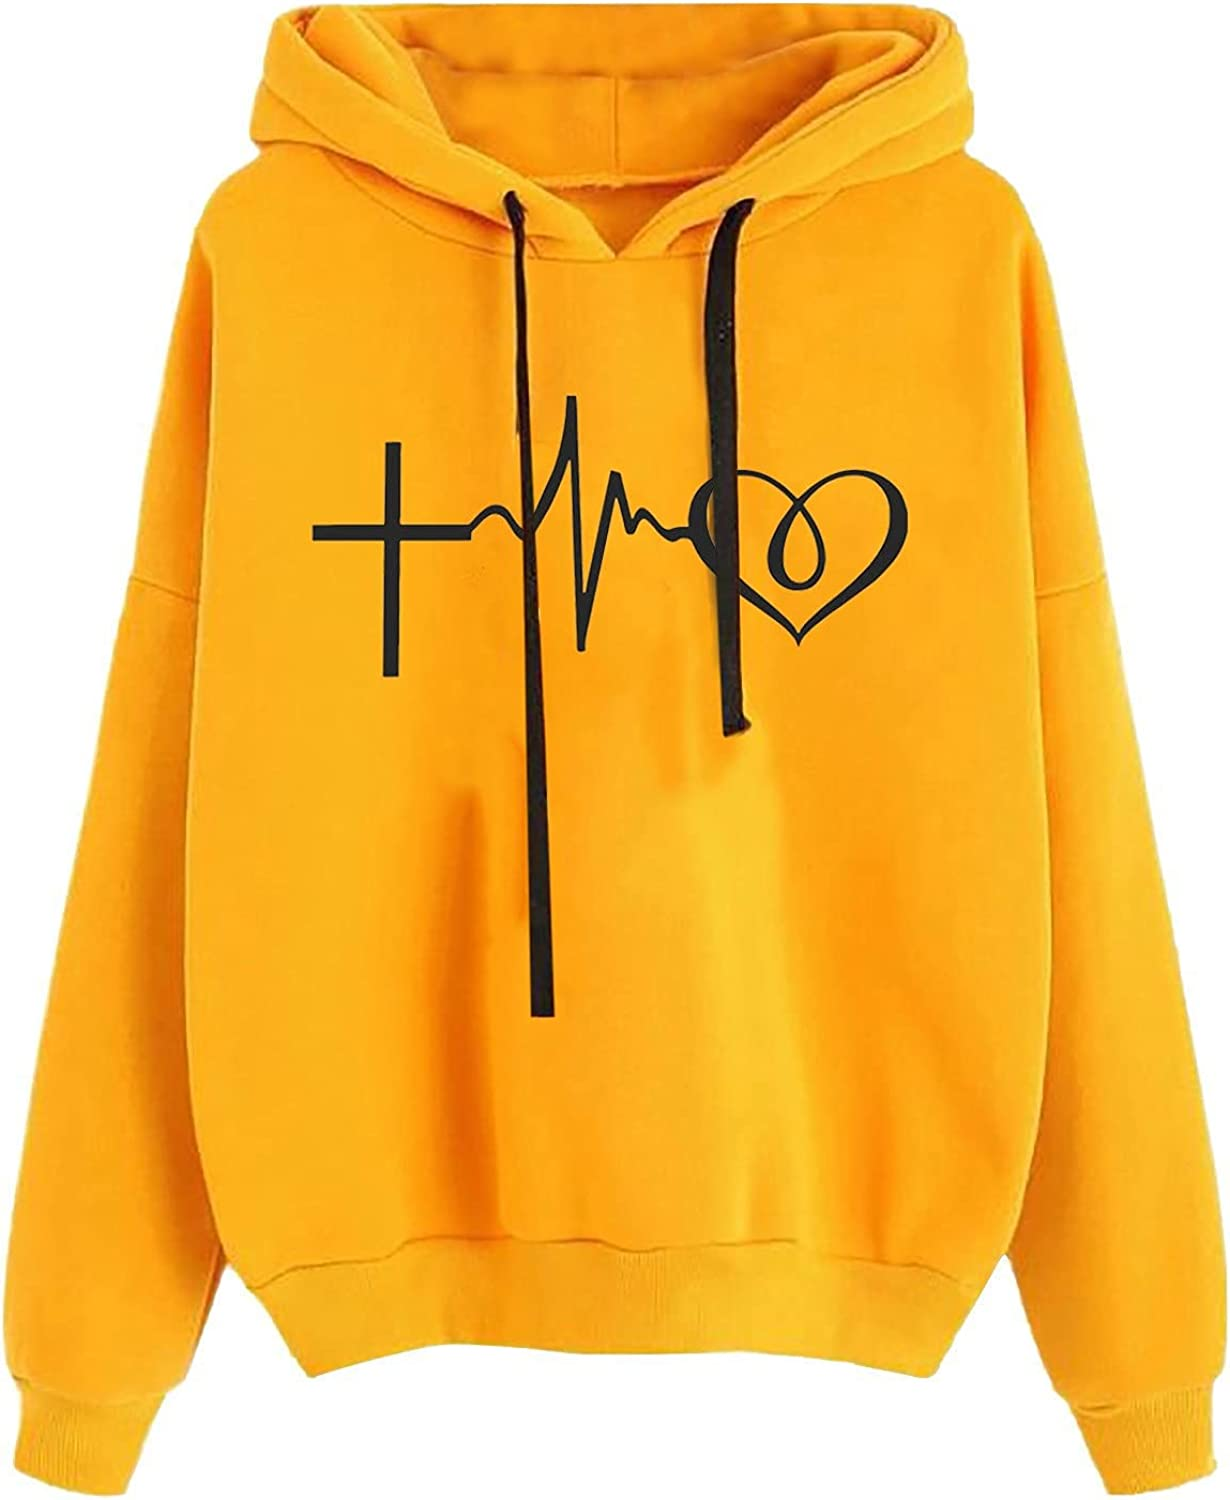 Women's Hoodie, Casual Loose Heart Print Long Sleeve Hooded Drawstring Pullover Sweatshirt Tops Winter Clothes